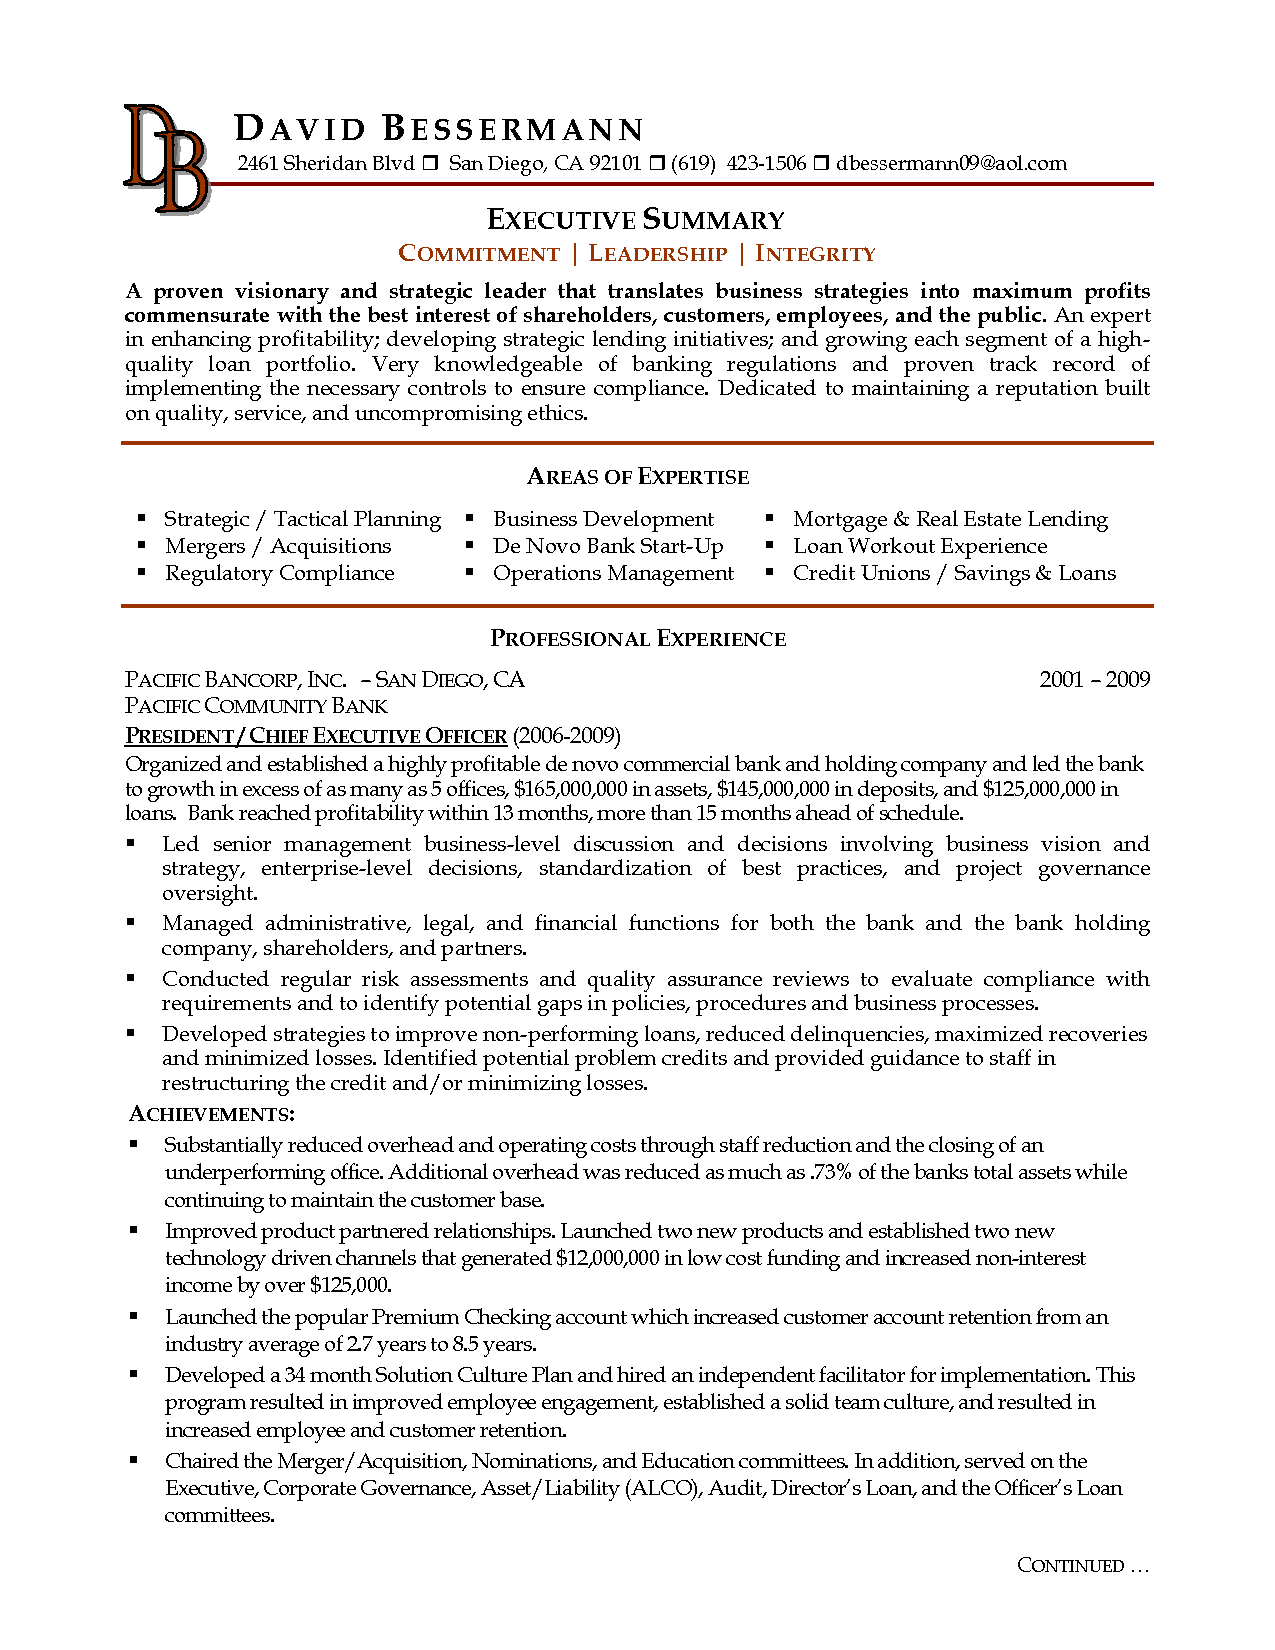 Warwick Coursework Management Tea Tuesday Welcome South Africans With Those Little Tea Sandwic Resume Summary Examples Resume Examples Resume Writing Samples